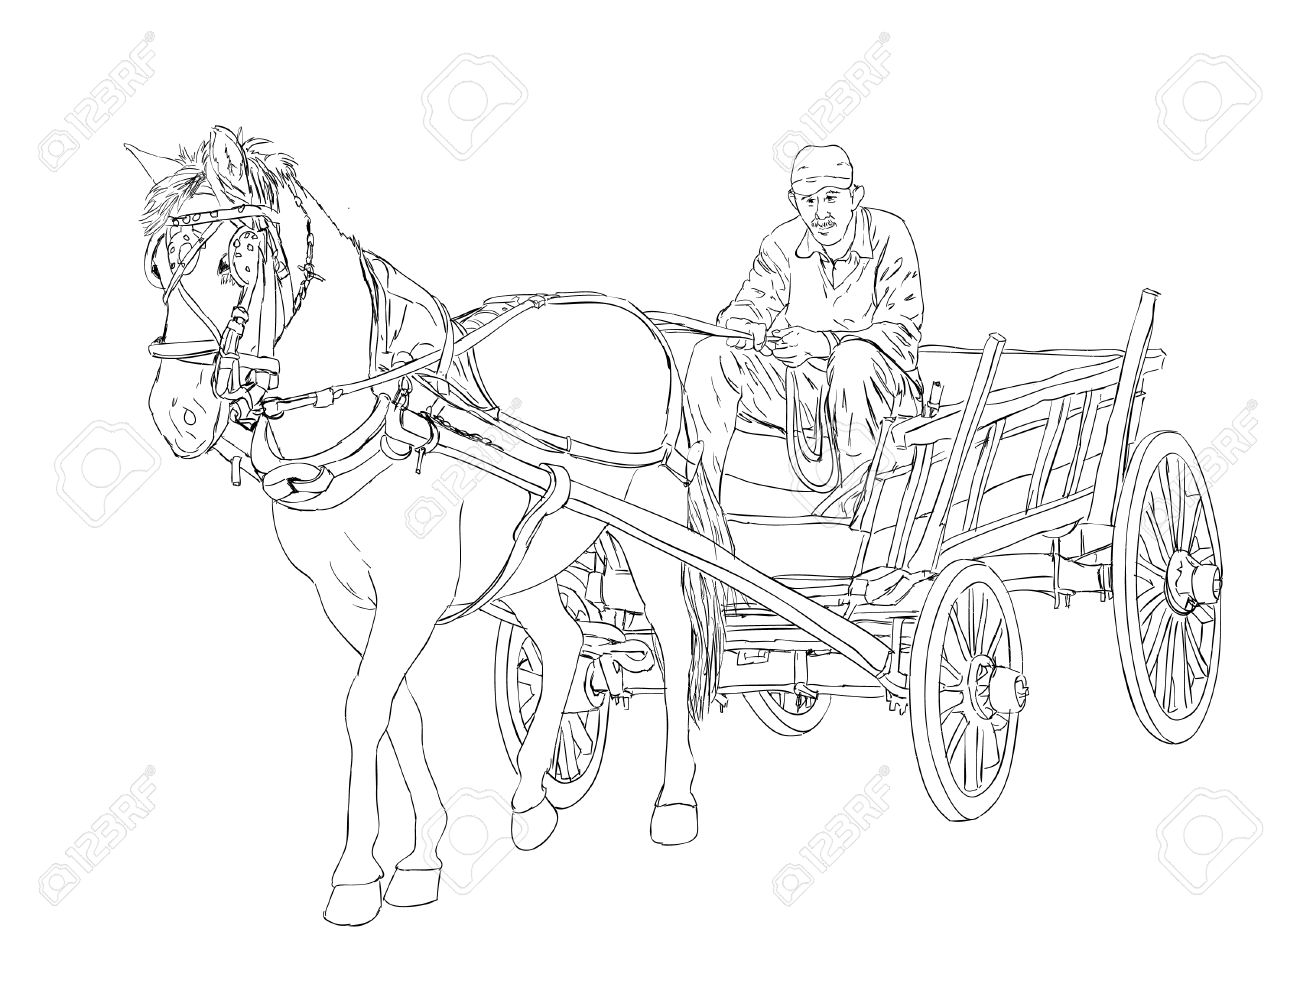 Horse cart sketch royalty free cliparts vectors and stock horse cart sketch stock vector 44760960 ccuart Choice Image